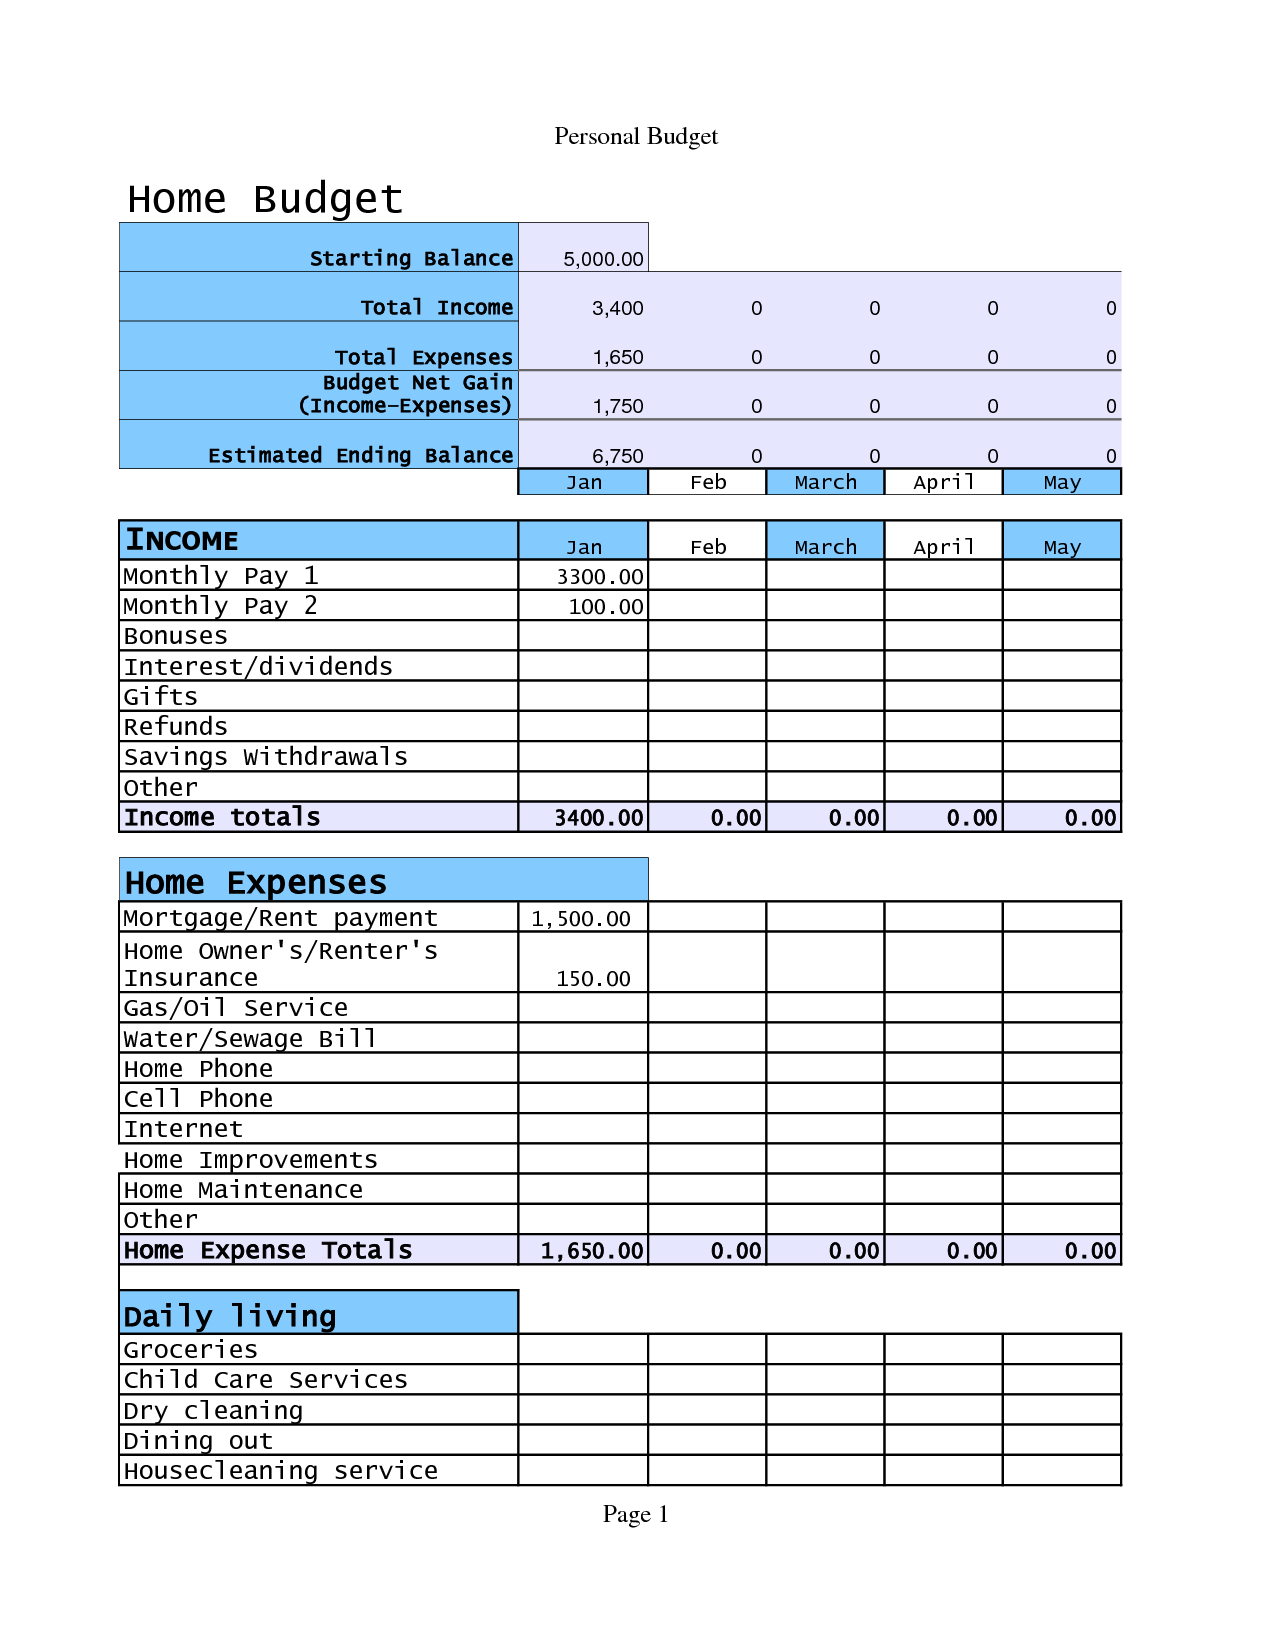 Sample Project Budget Spreadsheet Excel In Samples Of Budget Spreadsheets Invoice Template In Excel Business